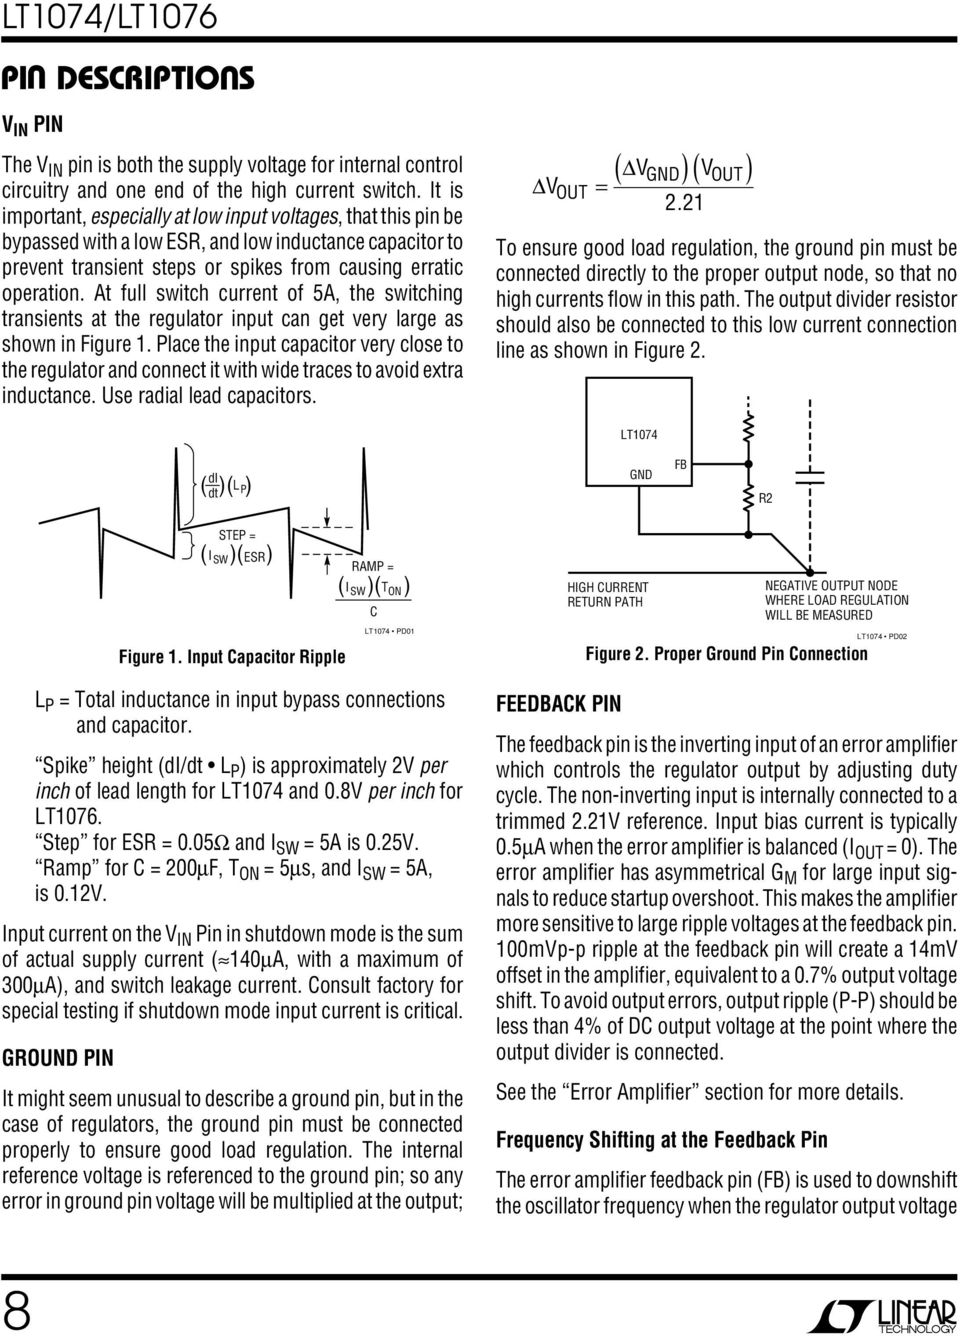 Lt1074 Lt1076 Step Down Switching Regulator Pdf Positive With Pnp Boost At Full Switch Current Of 5a The Transients Input Can Get